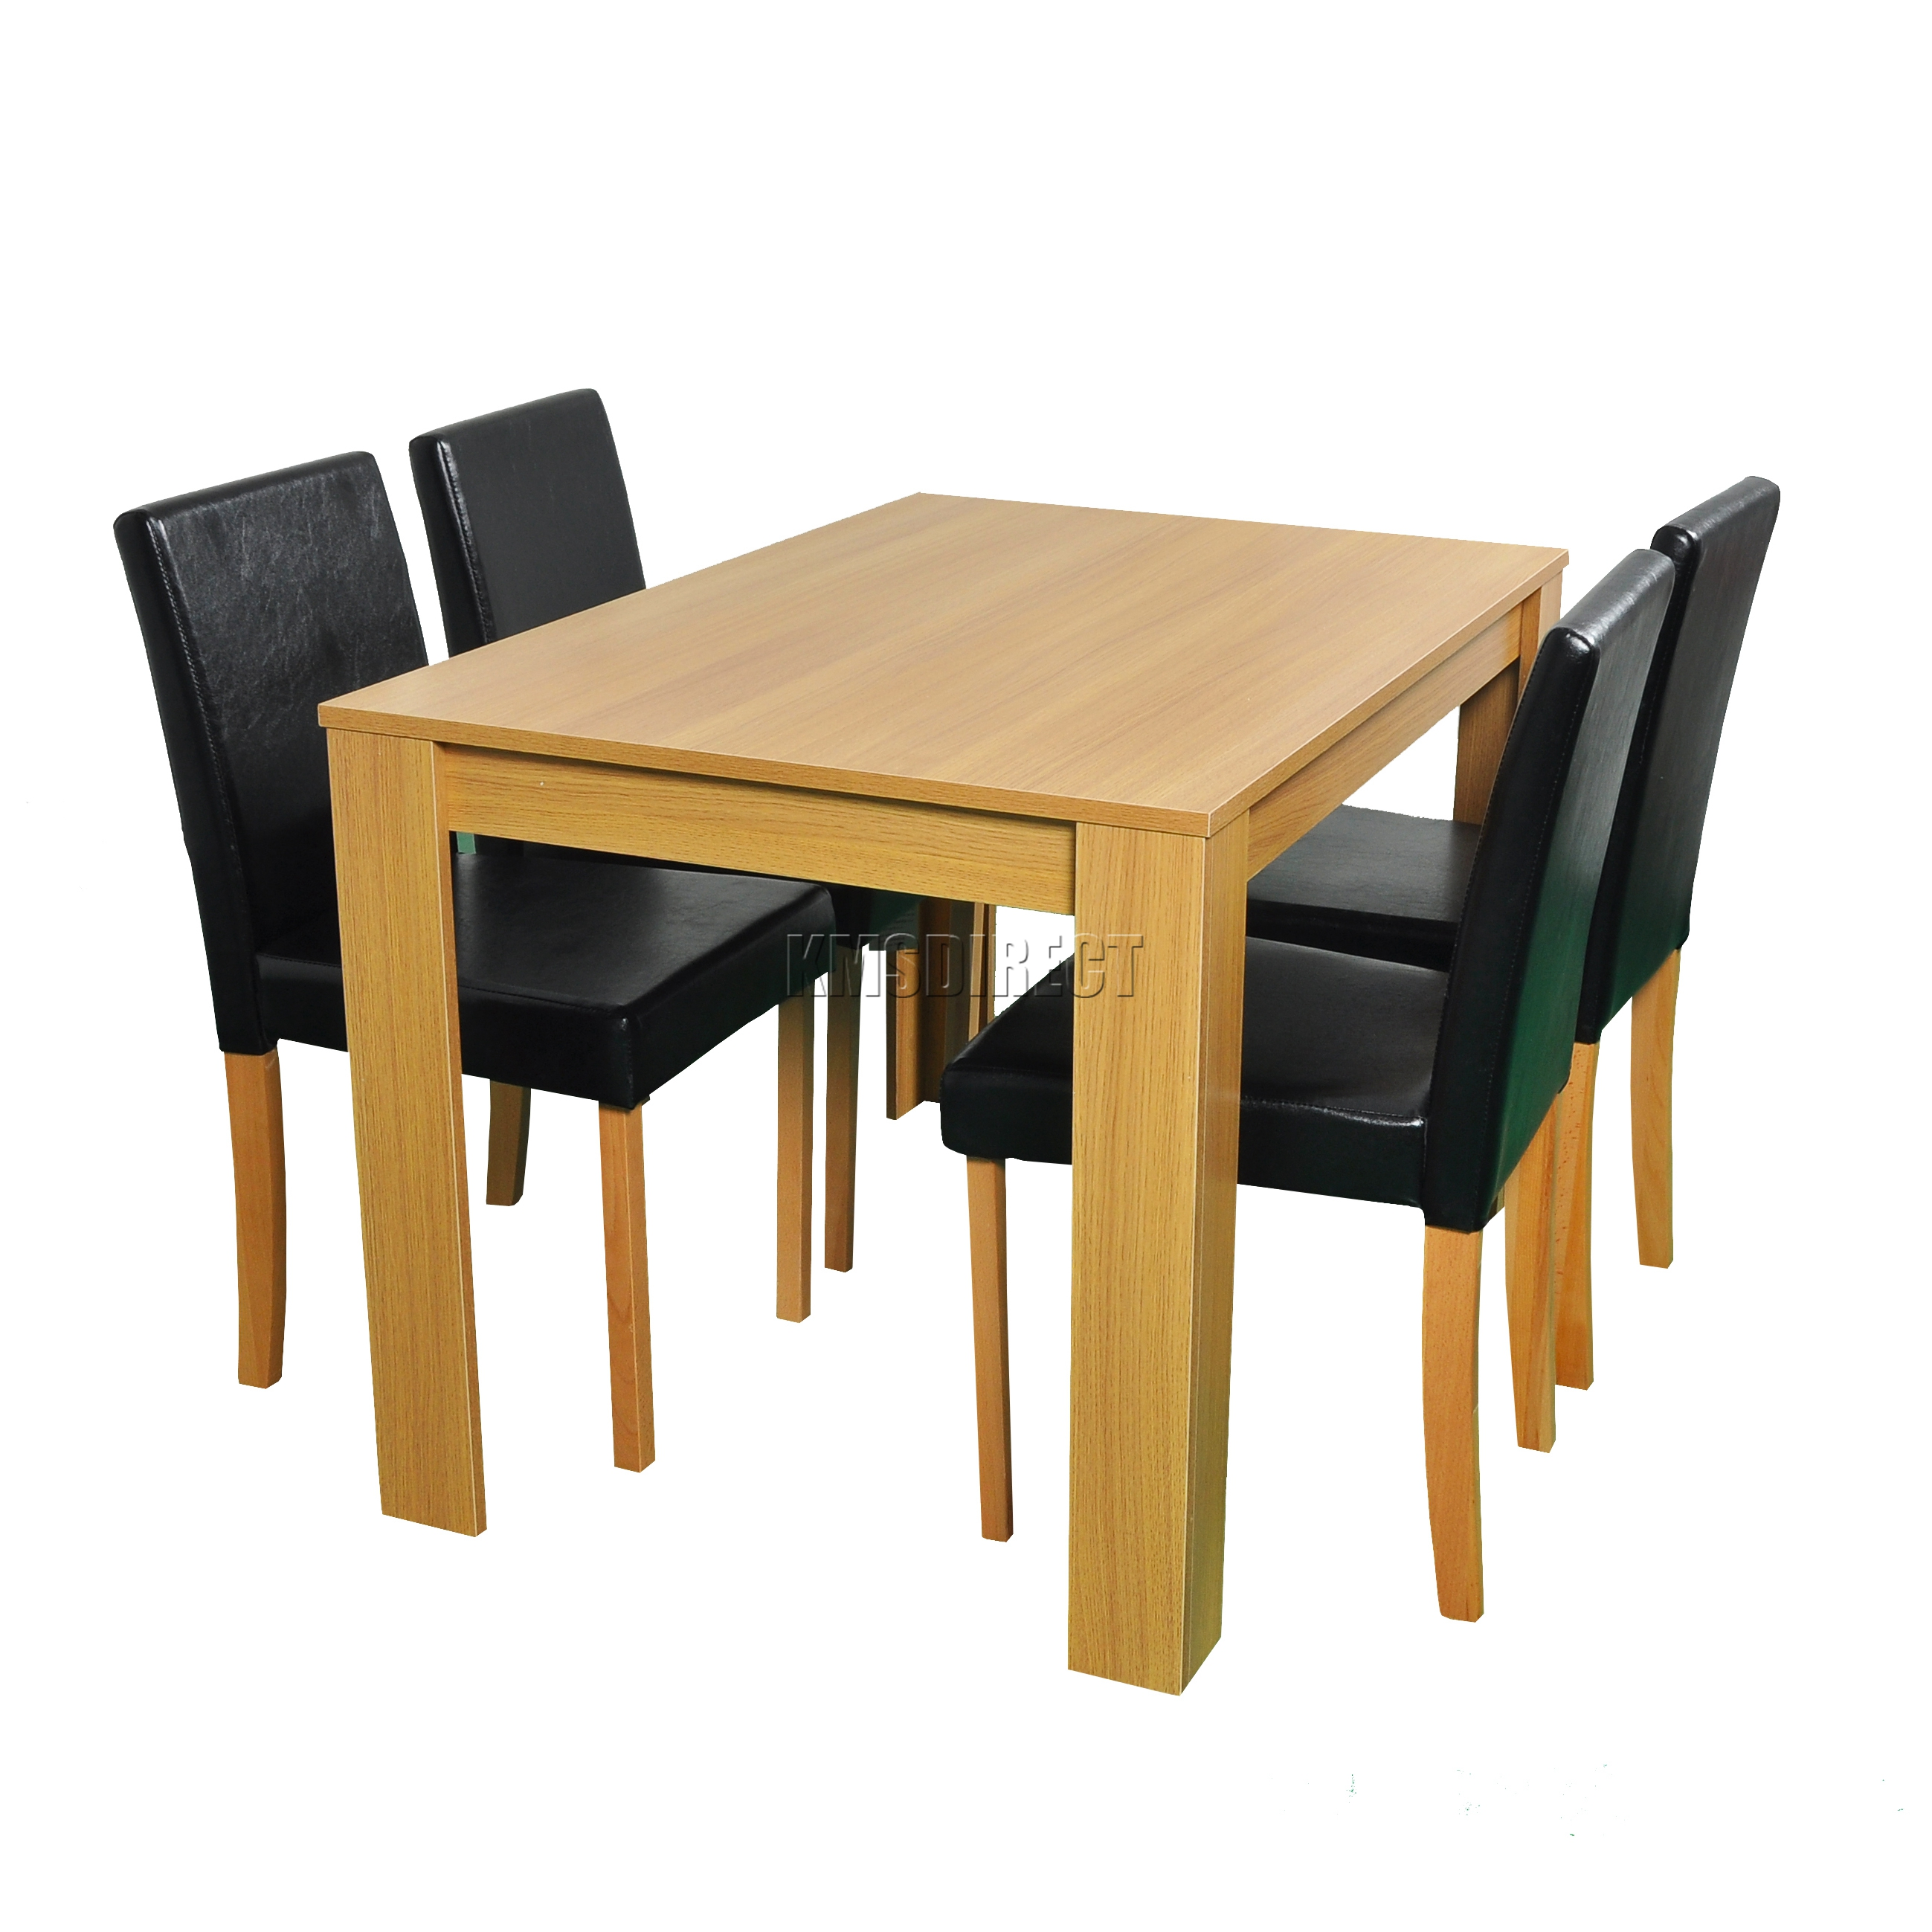 WestWood Wooden Dining Table And 4 Or 6